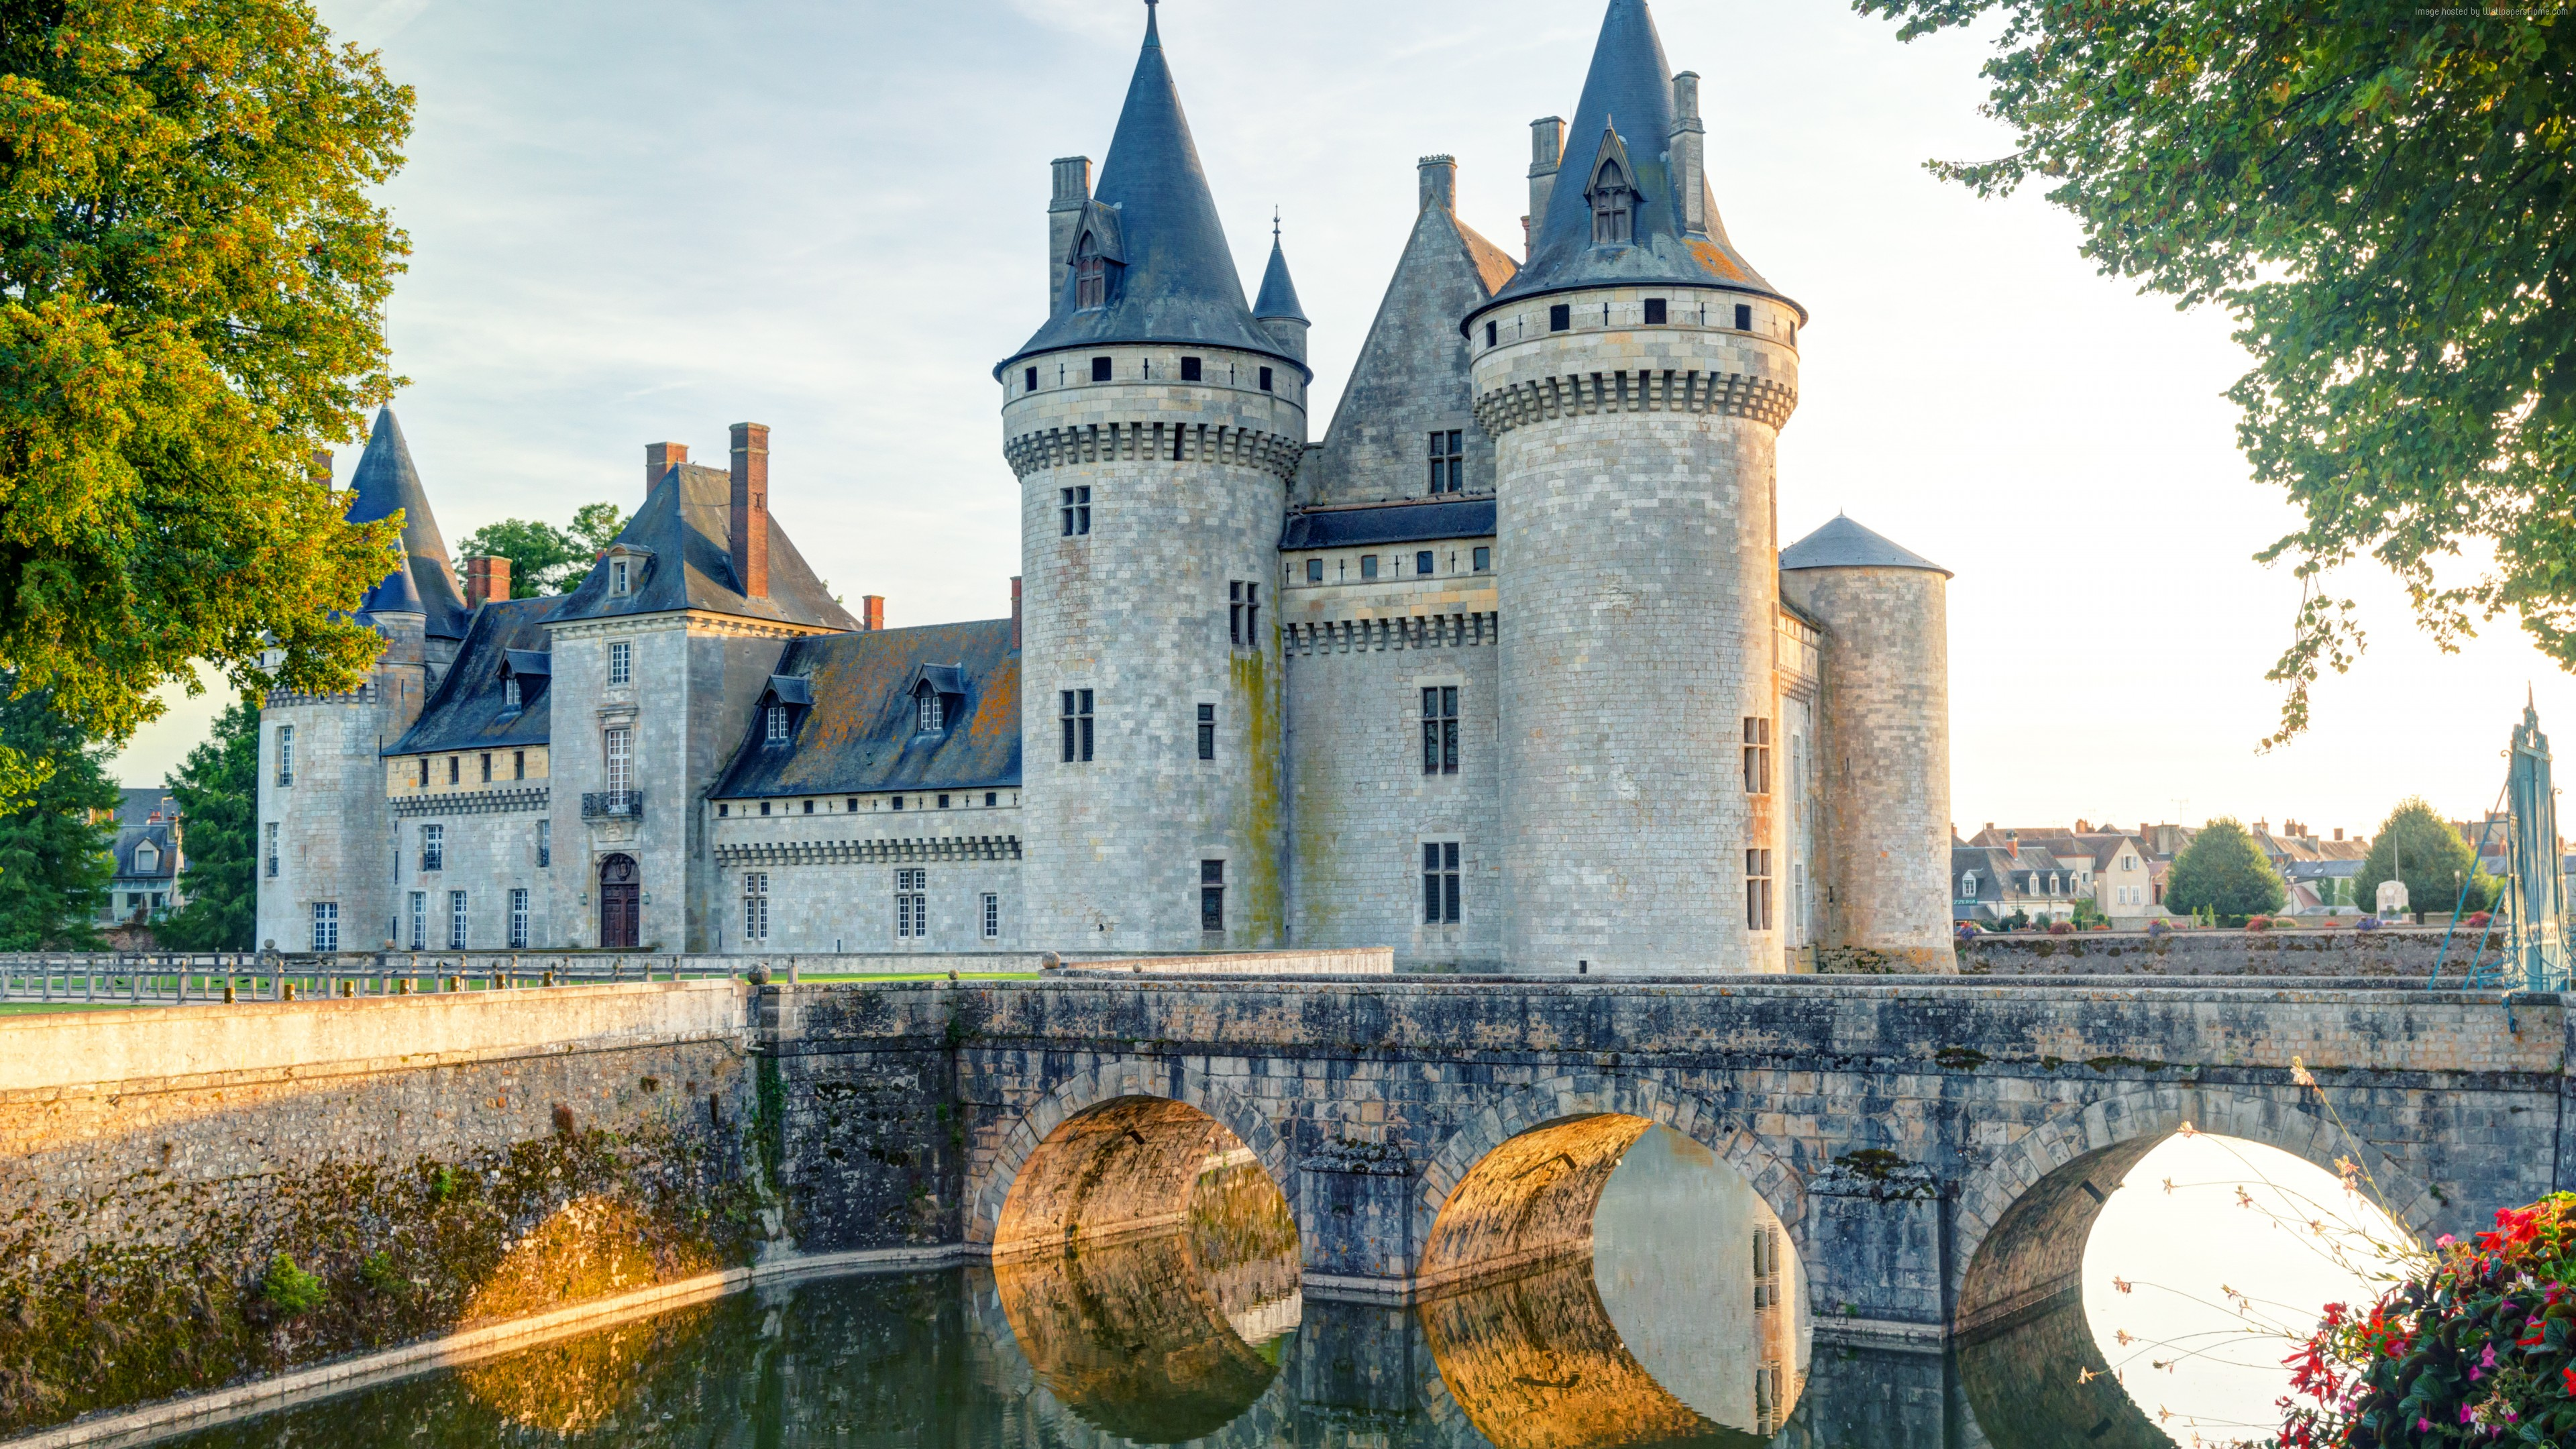 Wallpaper Chateau de sully-sur-loire, France, castle, travel, tourism, Architecture